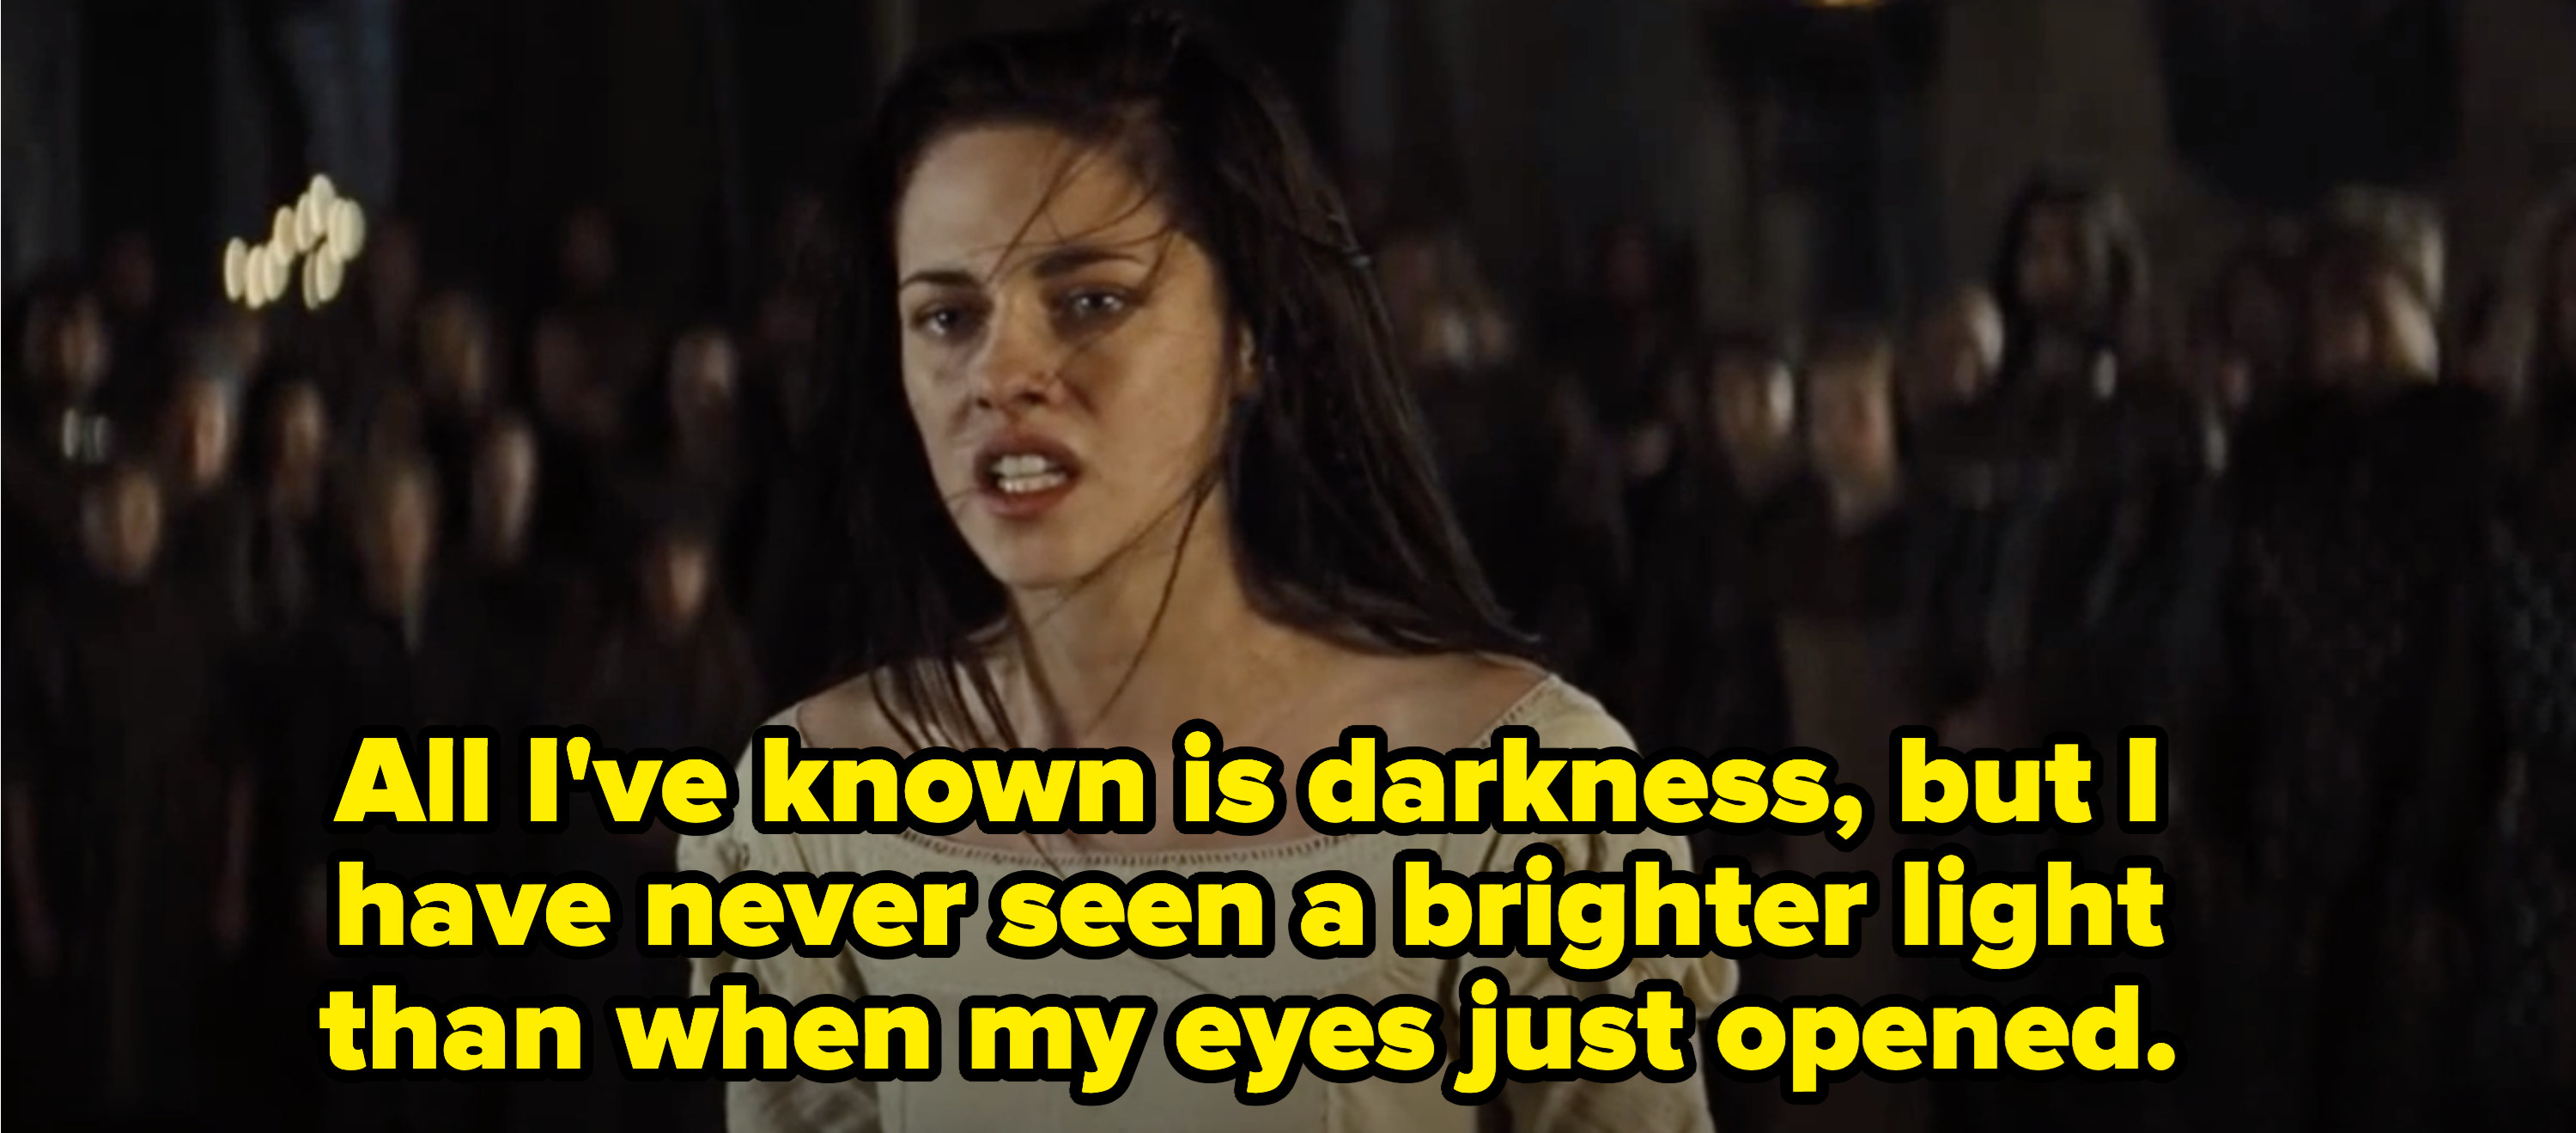 """Snow White declaring: """"All I've known is darkness, but I've never seen a brighter light than when my eyes just opened"""""""